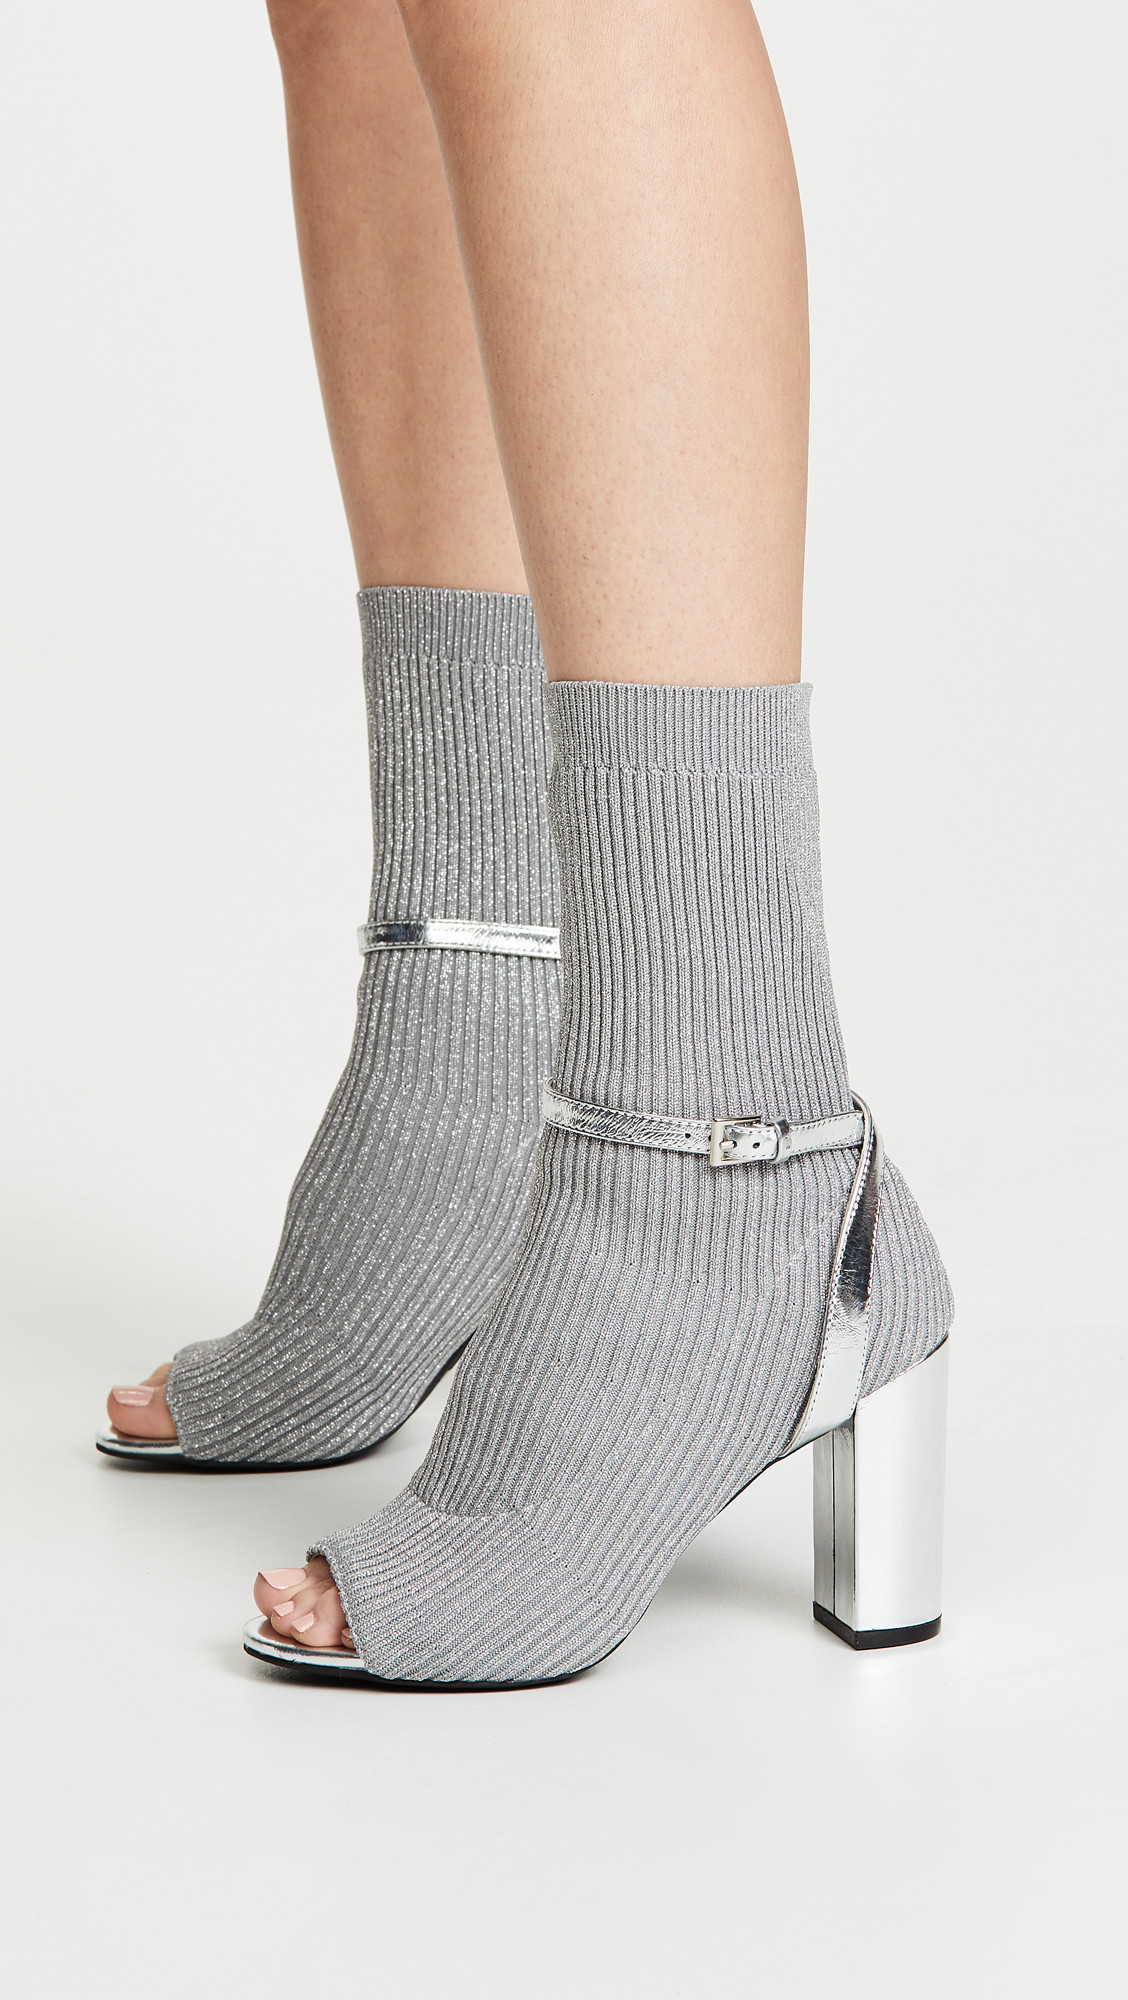 538a8eb1cd84 Jeffrey Campbell Nila Sock Booties